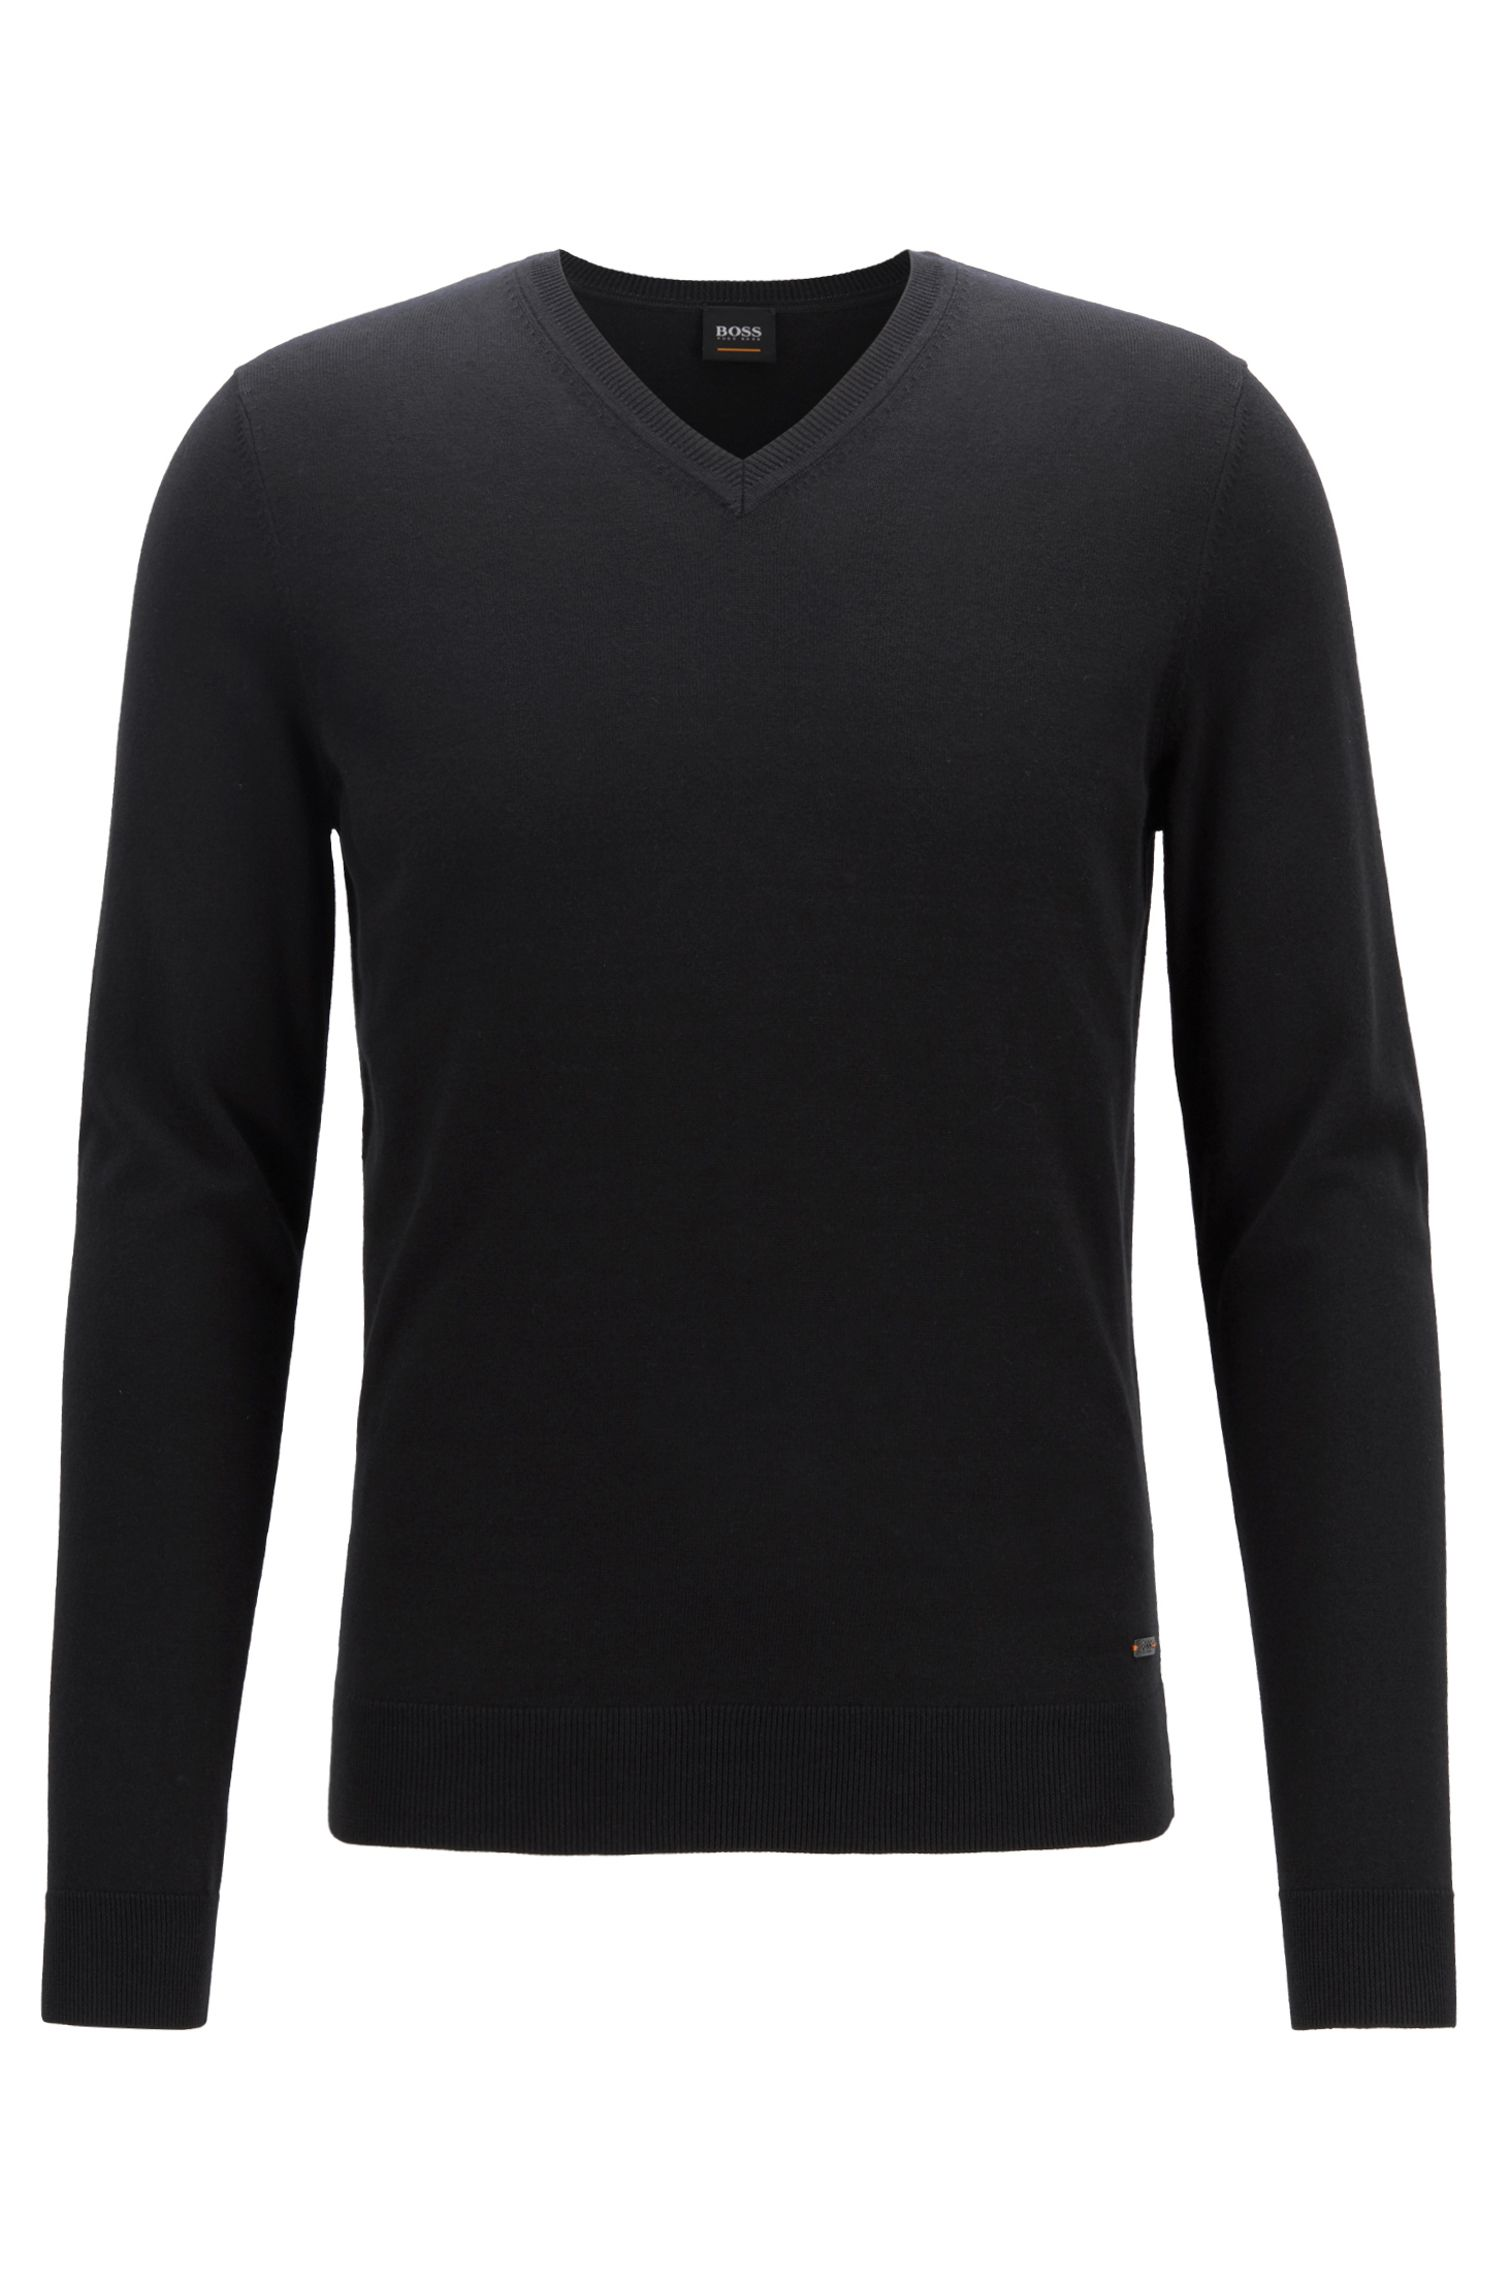 V-neck sweater in a cotton blend with cashmere, Black